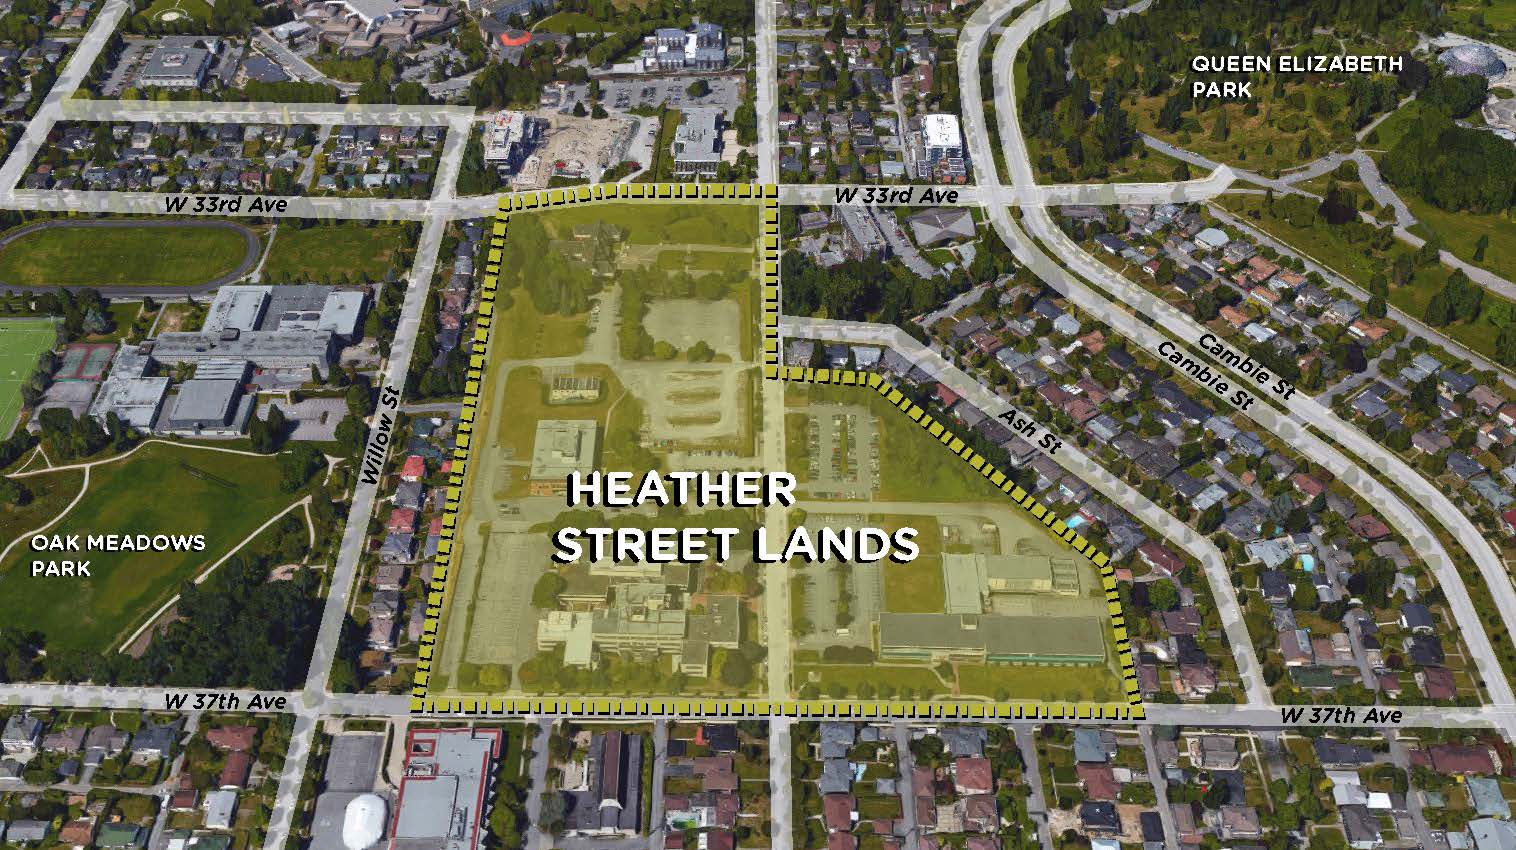 A map outlining the Heather Street Lands